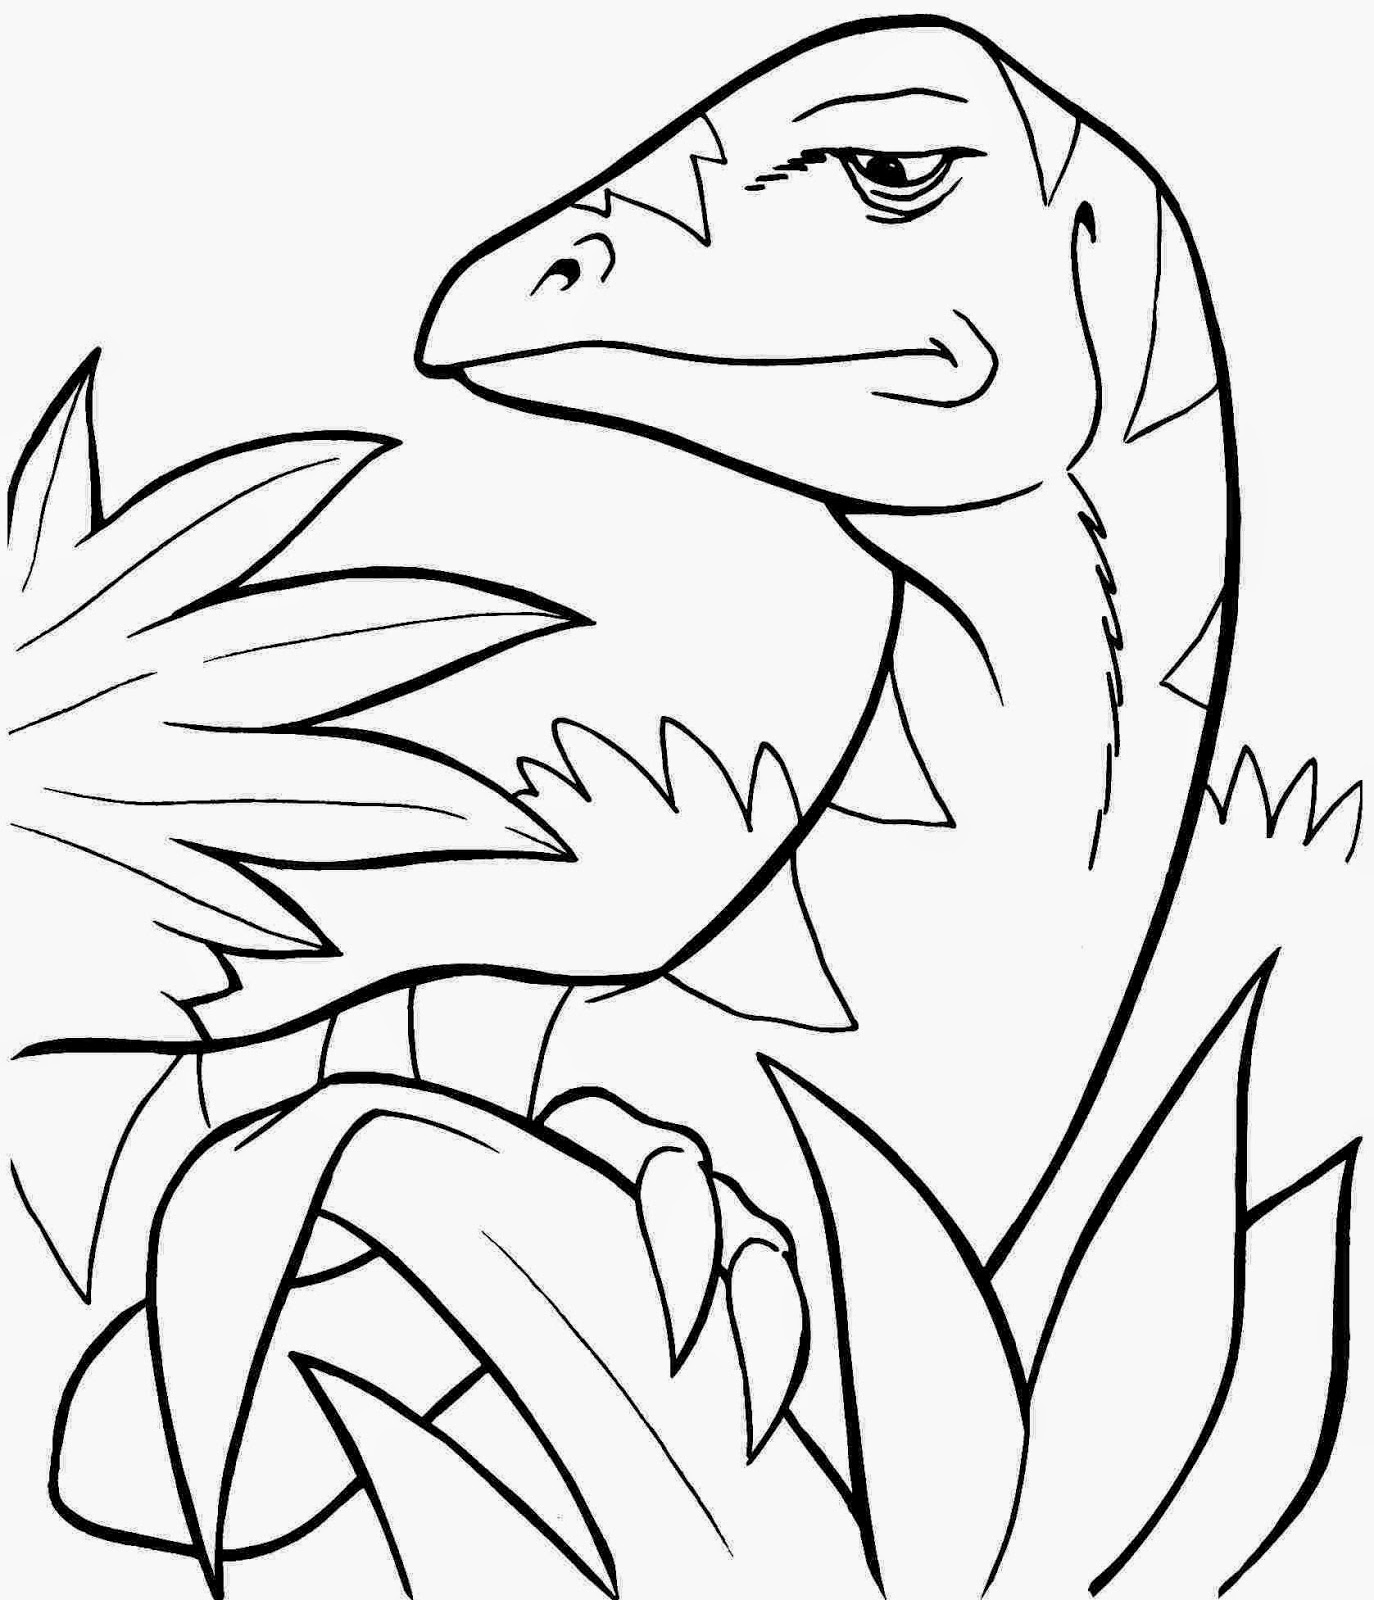 colouring dinosaur pictures free printable dinosaur coloring pages for kids dinosaur pictures colouring